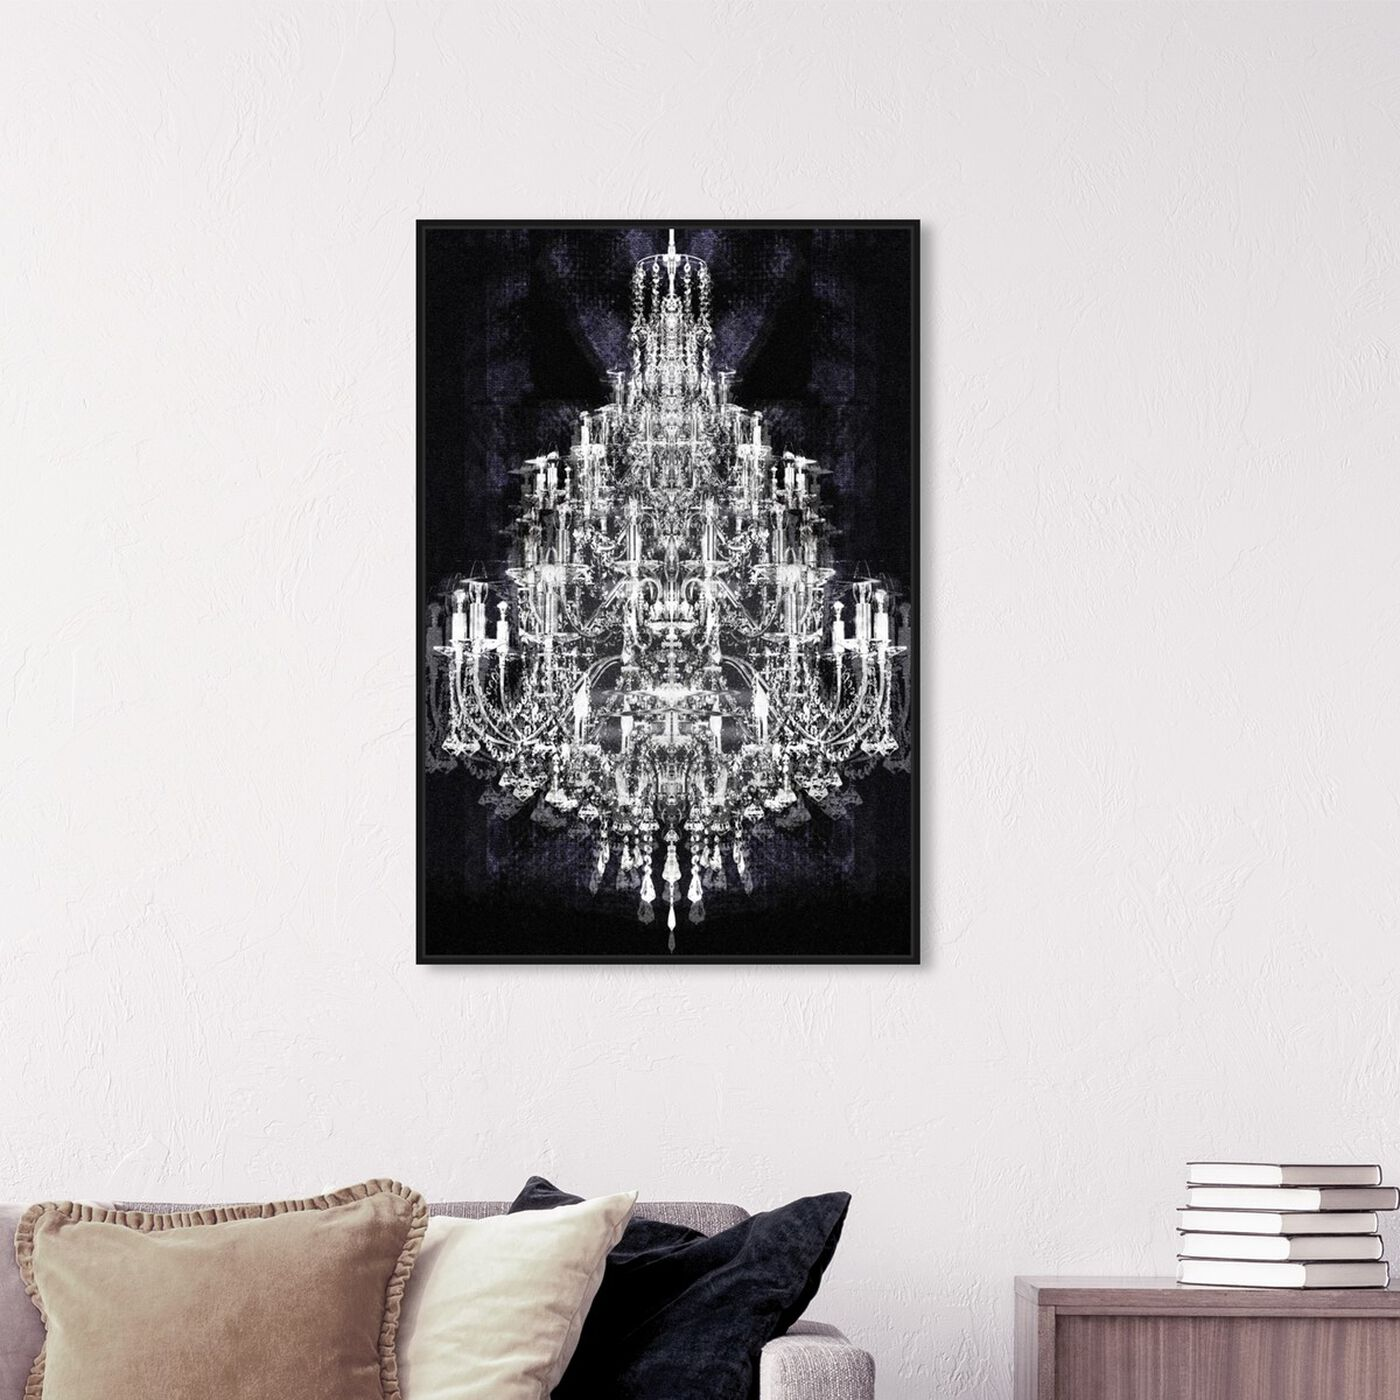 Hanging view of Montecarlo Crystal featuring fashion and glam and chandeliers art.